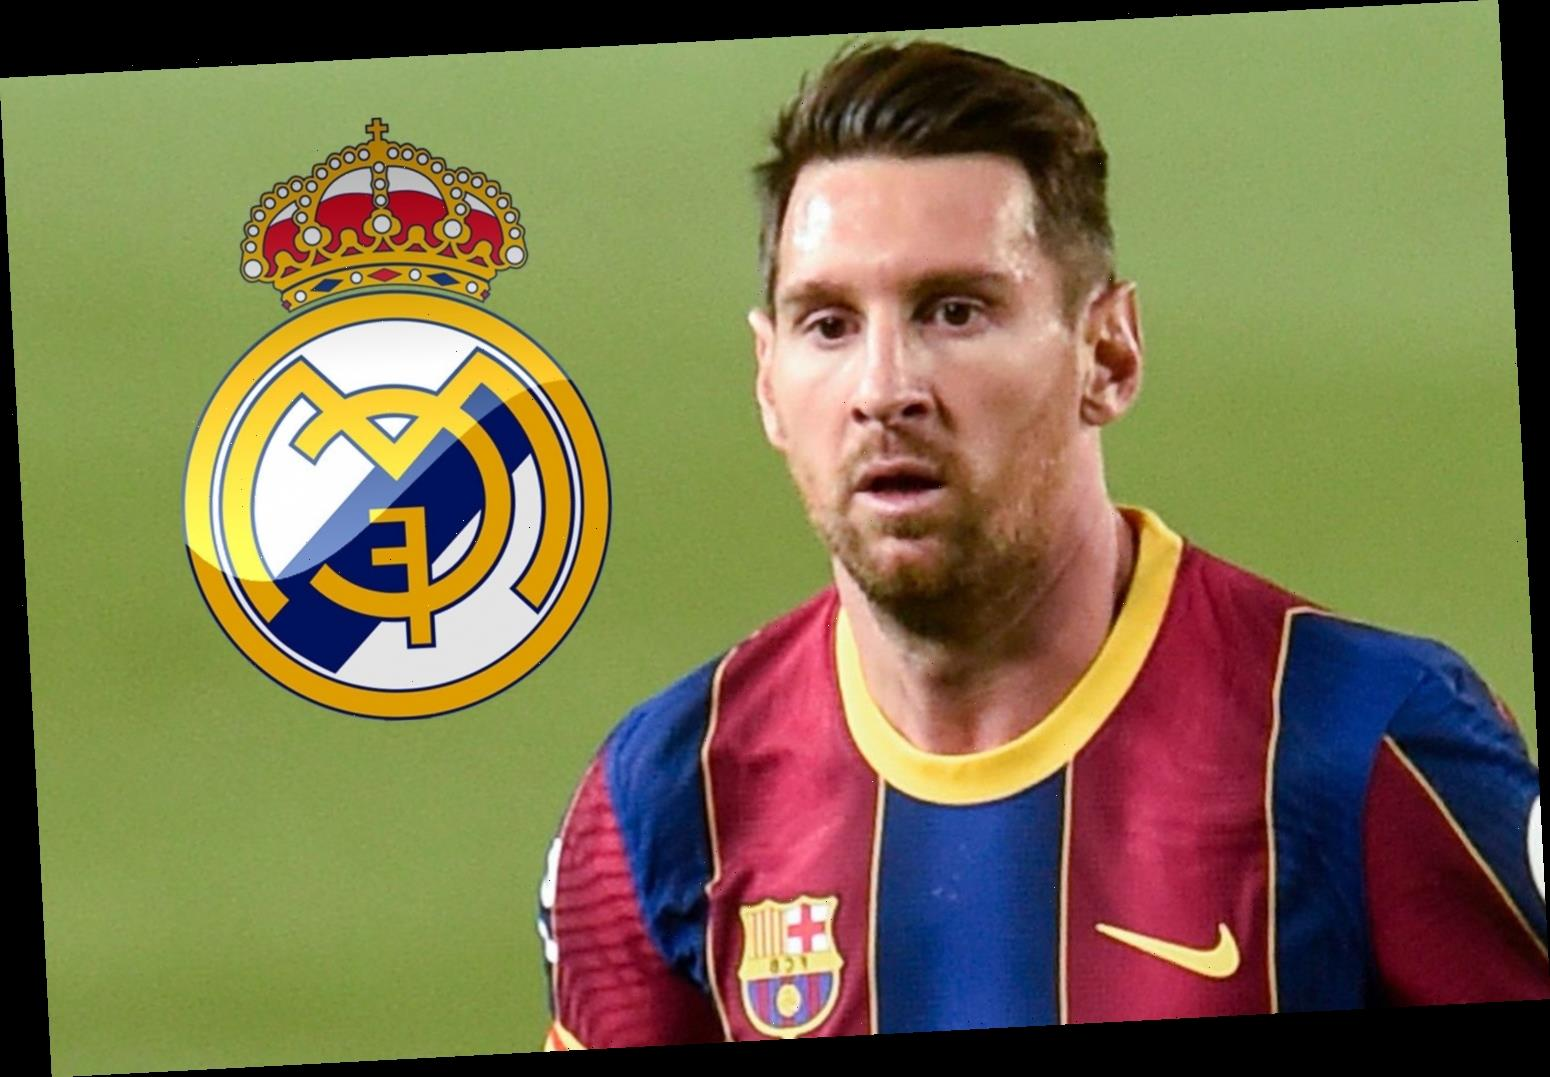 Real Madrid almost signed Barcelona's Lionel Messi in shock £225m transfer but told rivals 'you're wasting your time'